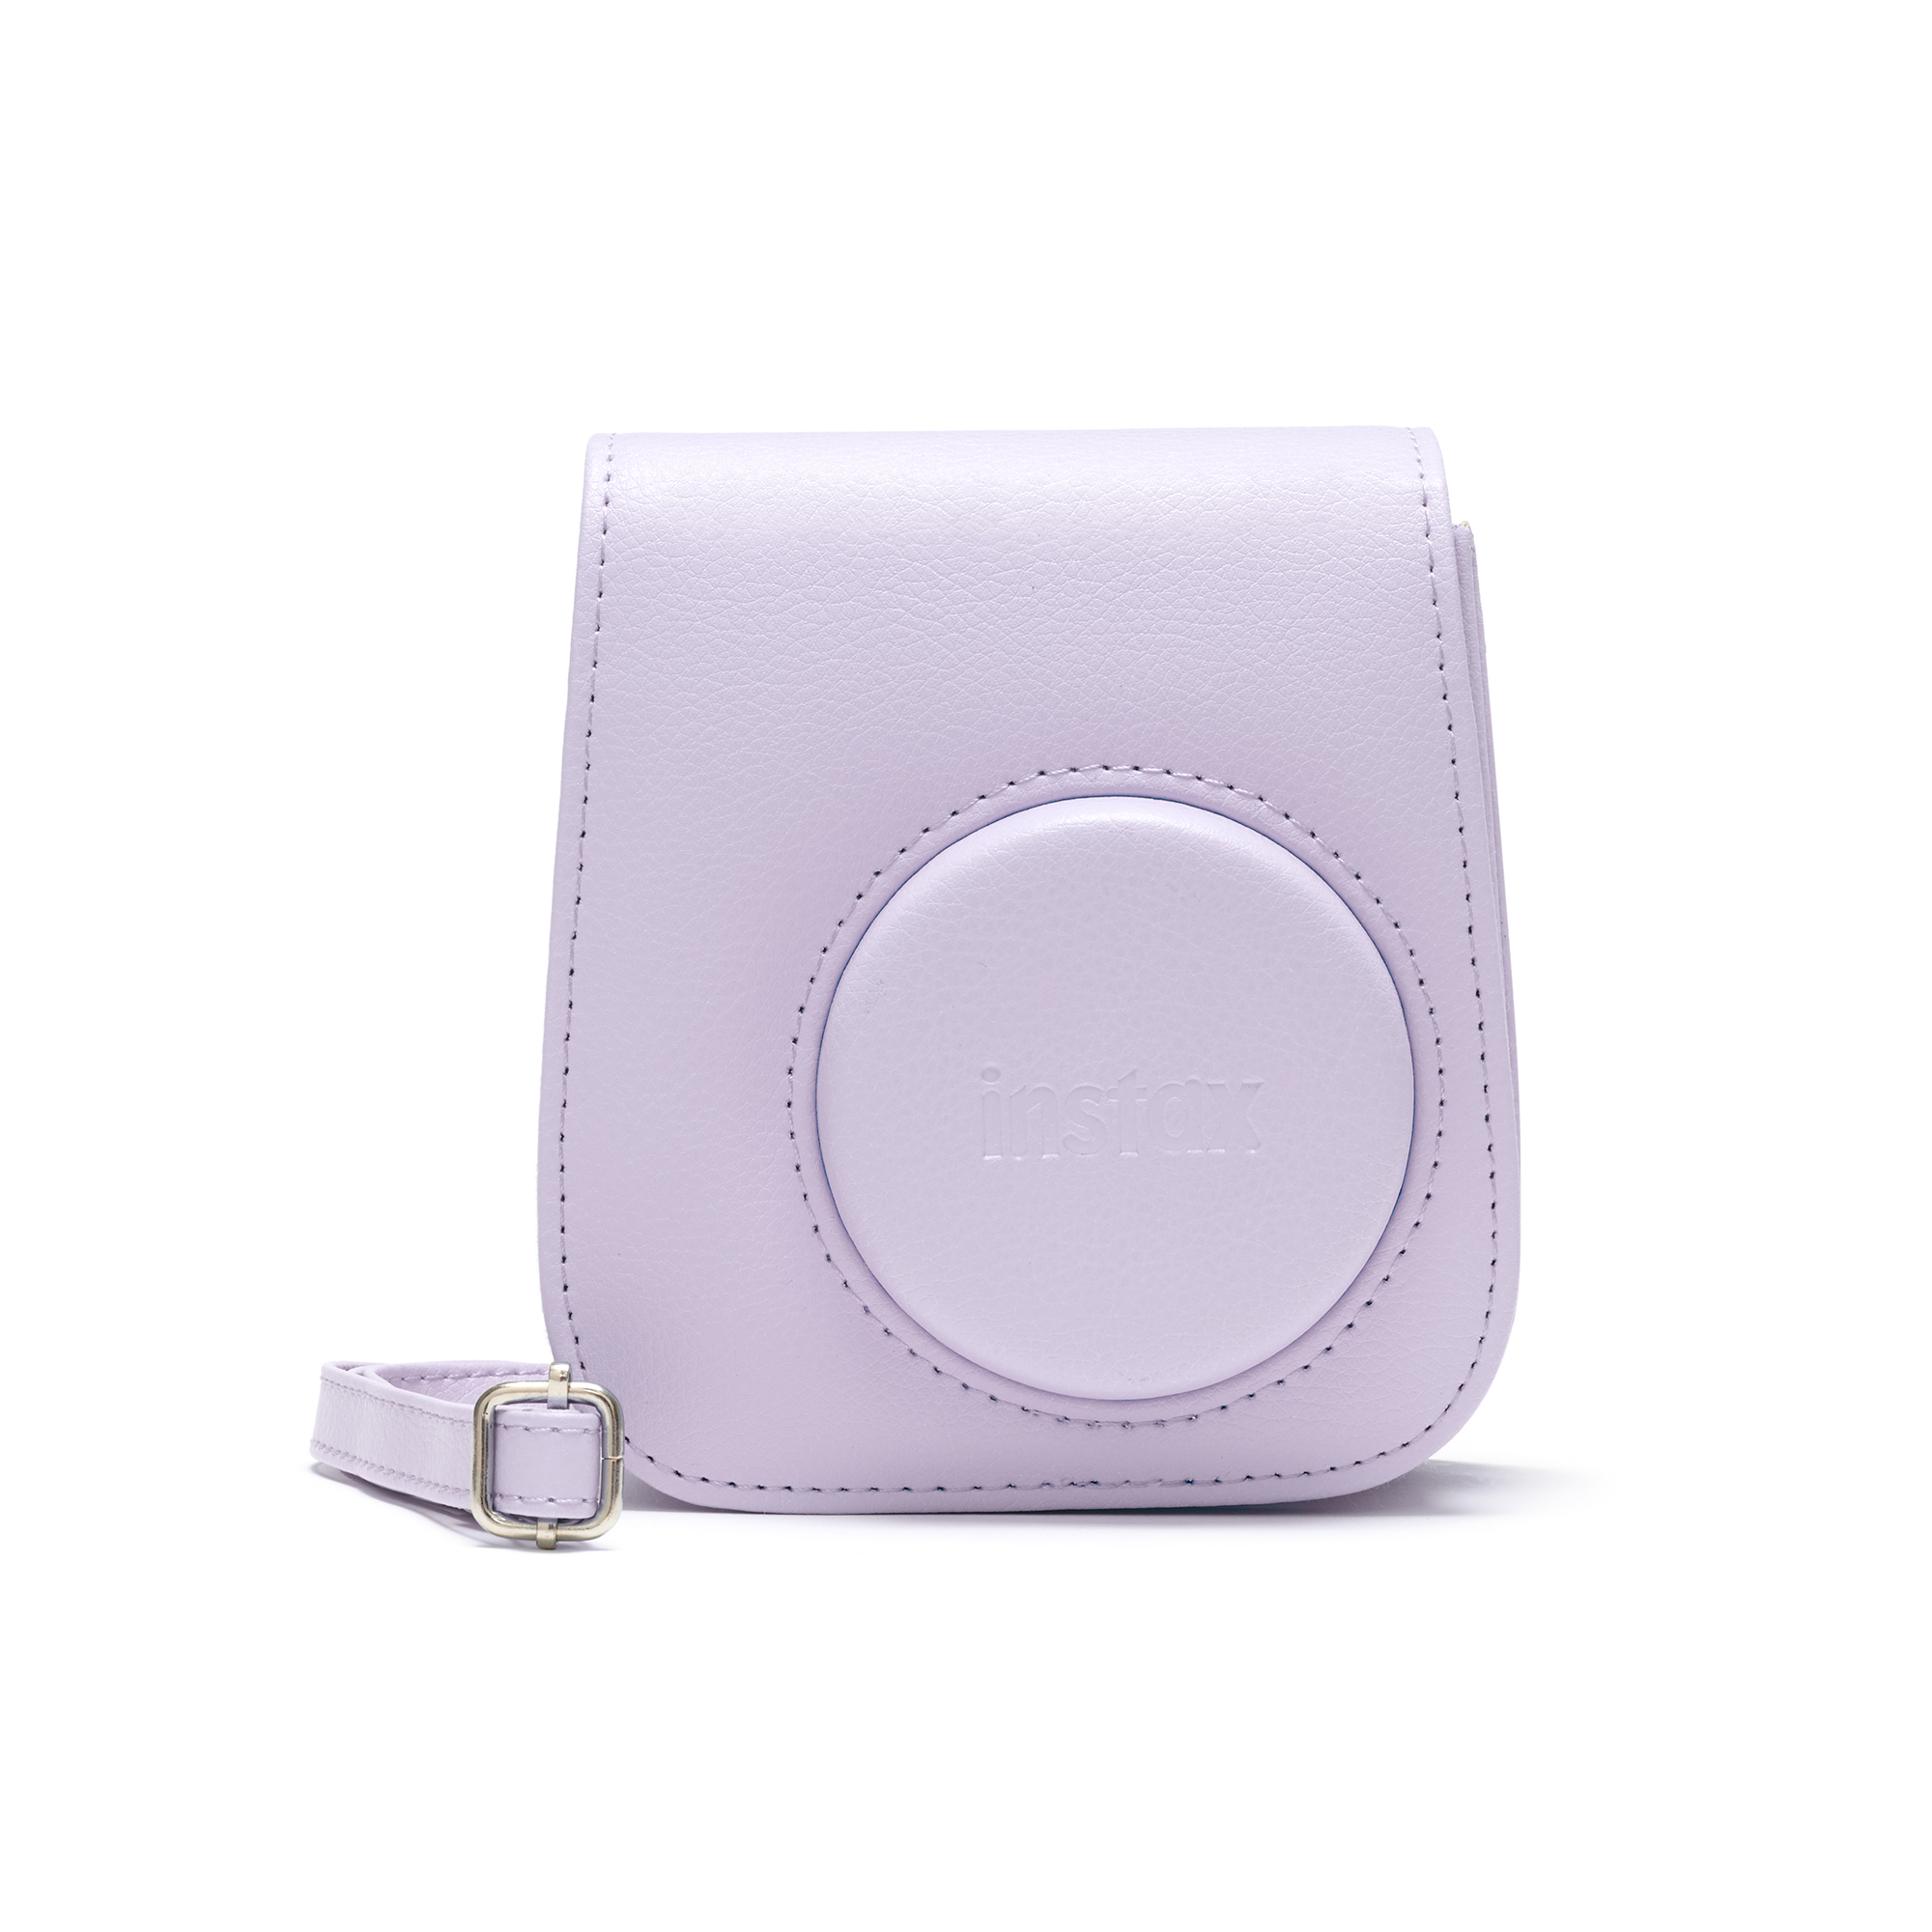 Case instax mini 11 - Lilac Purple